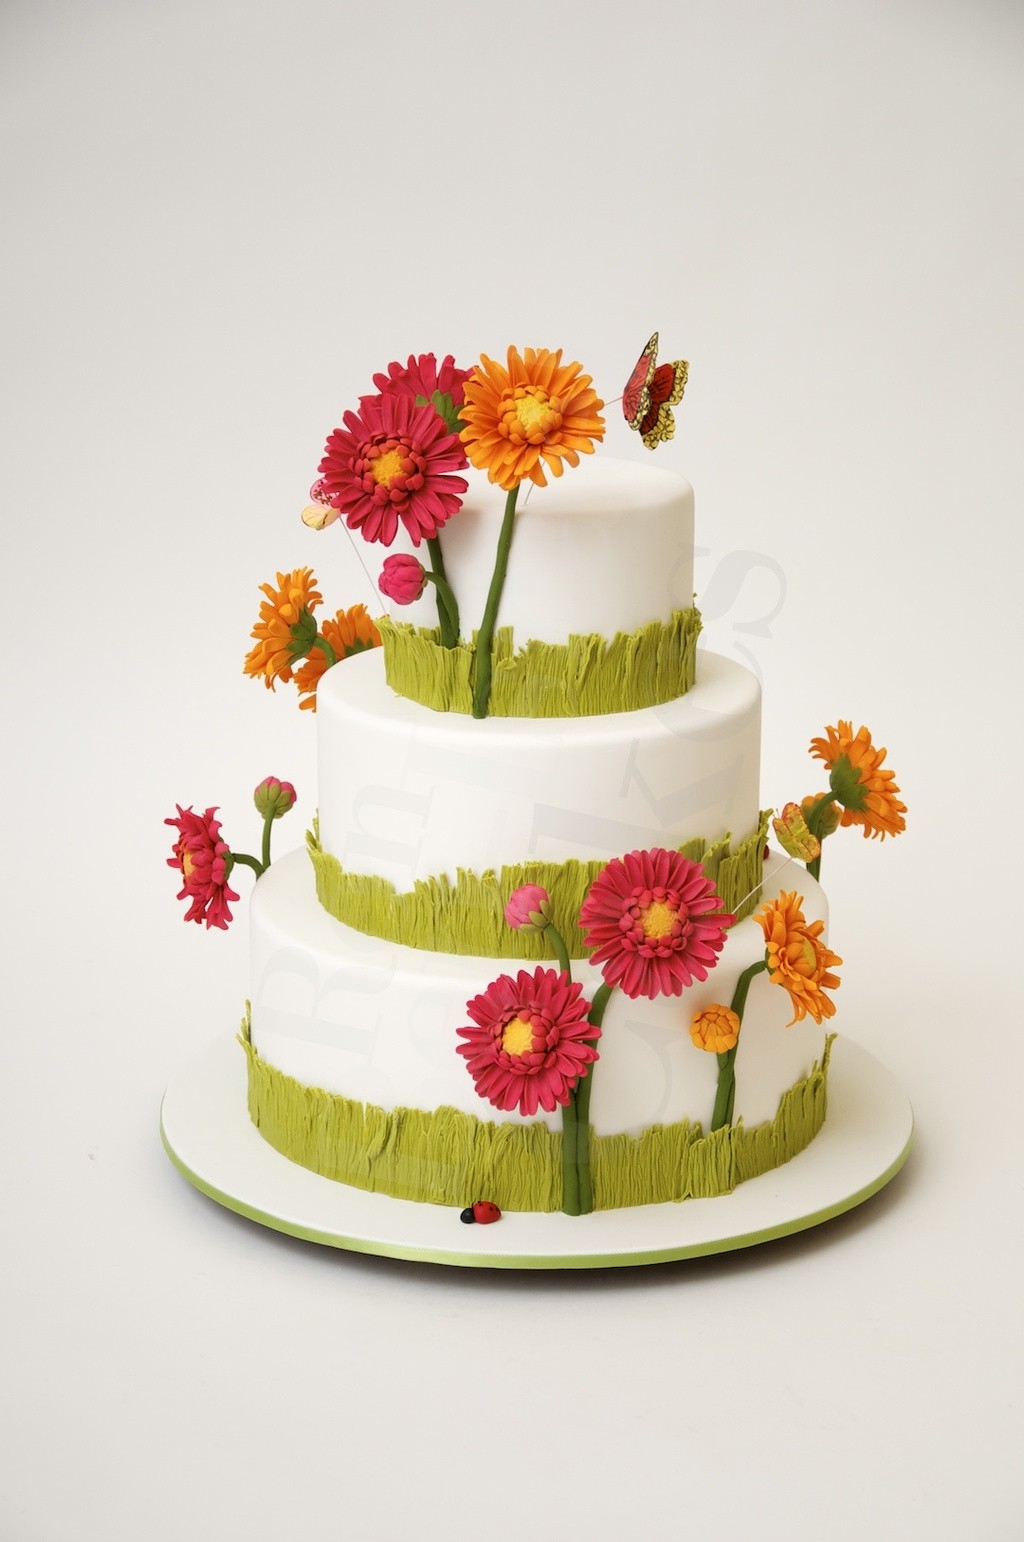 Wedding-cake-inspiration-ron-ben-isreal-wedding-cakes-red-orange-green-spring.full